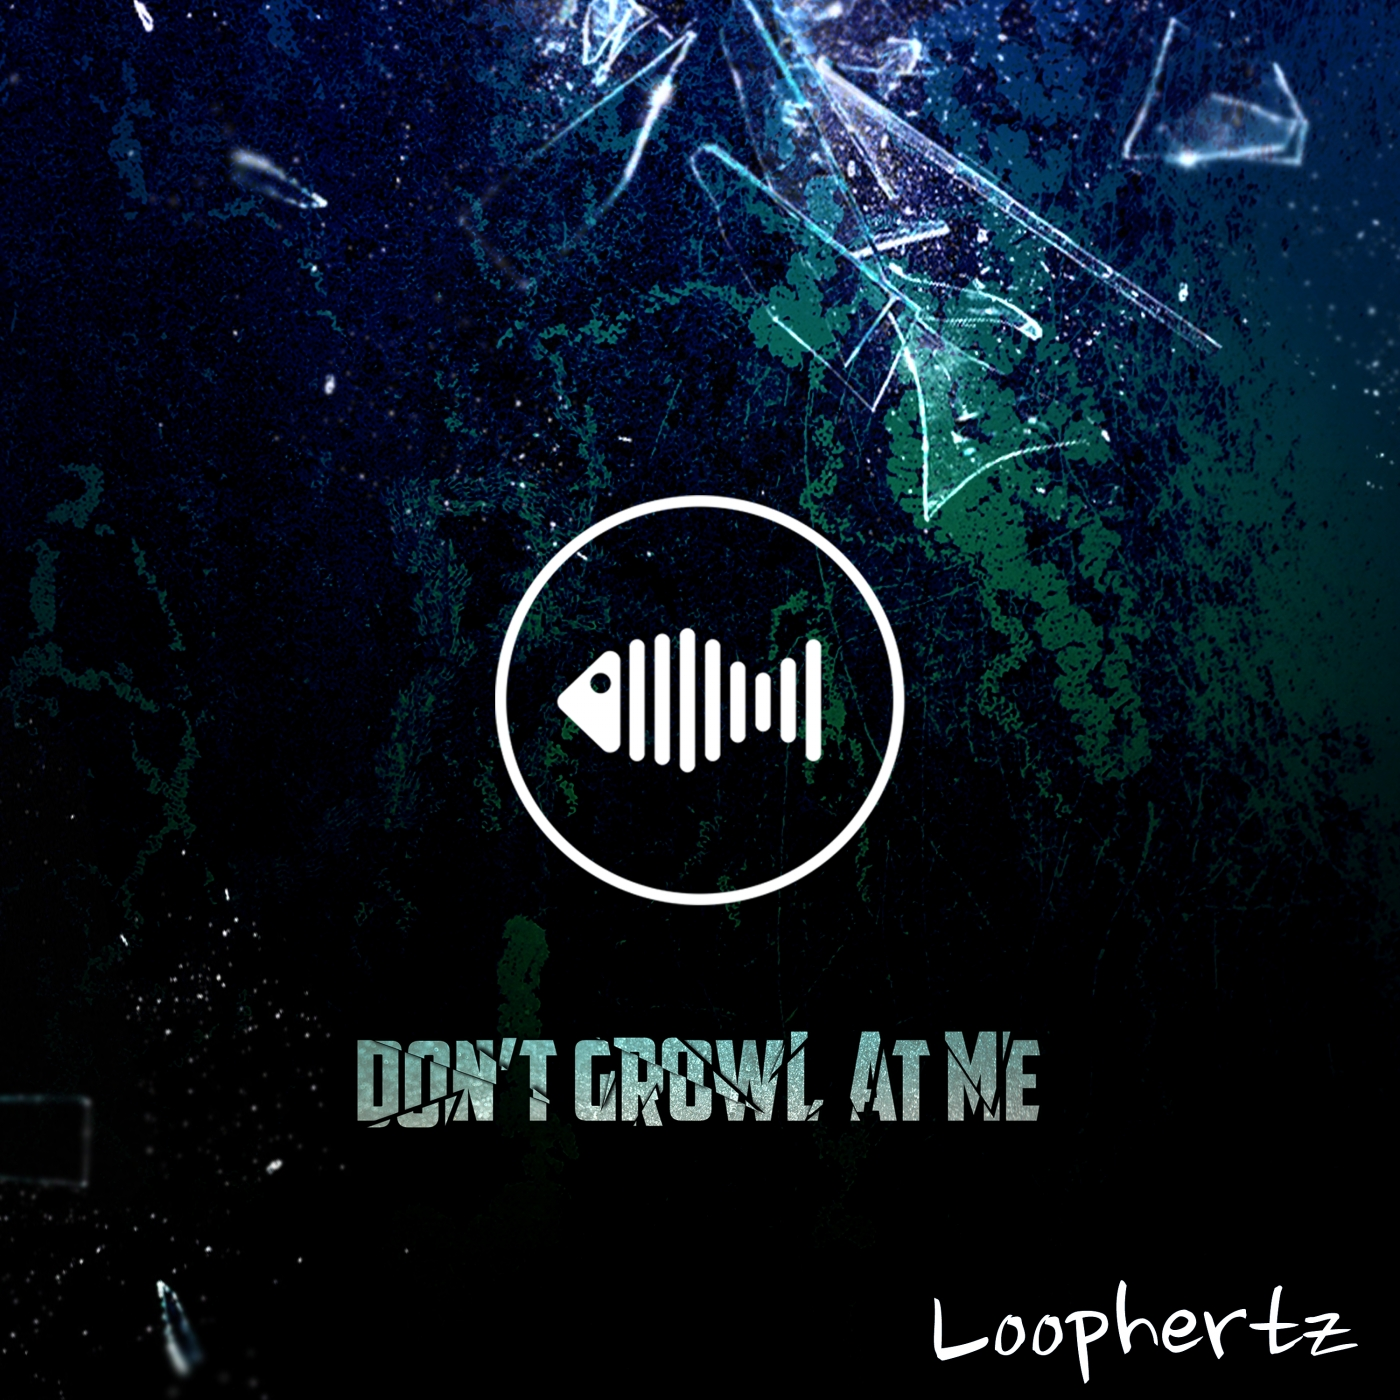 Loophertz - Don't Growl At Me